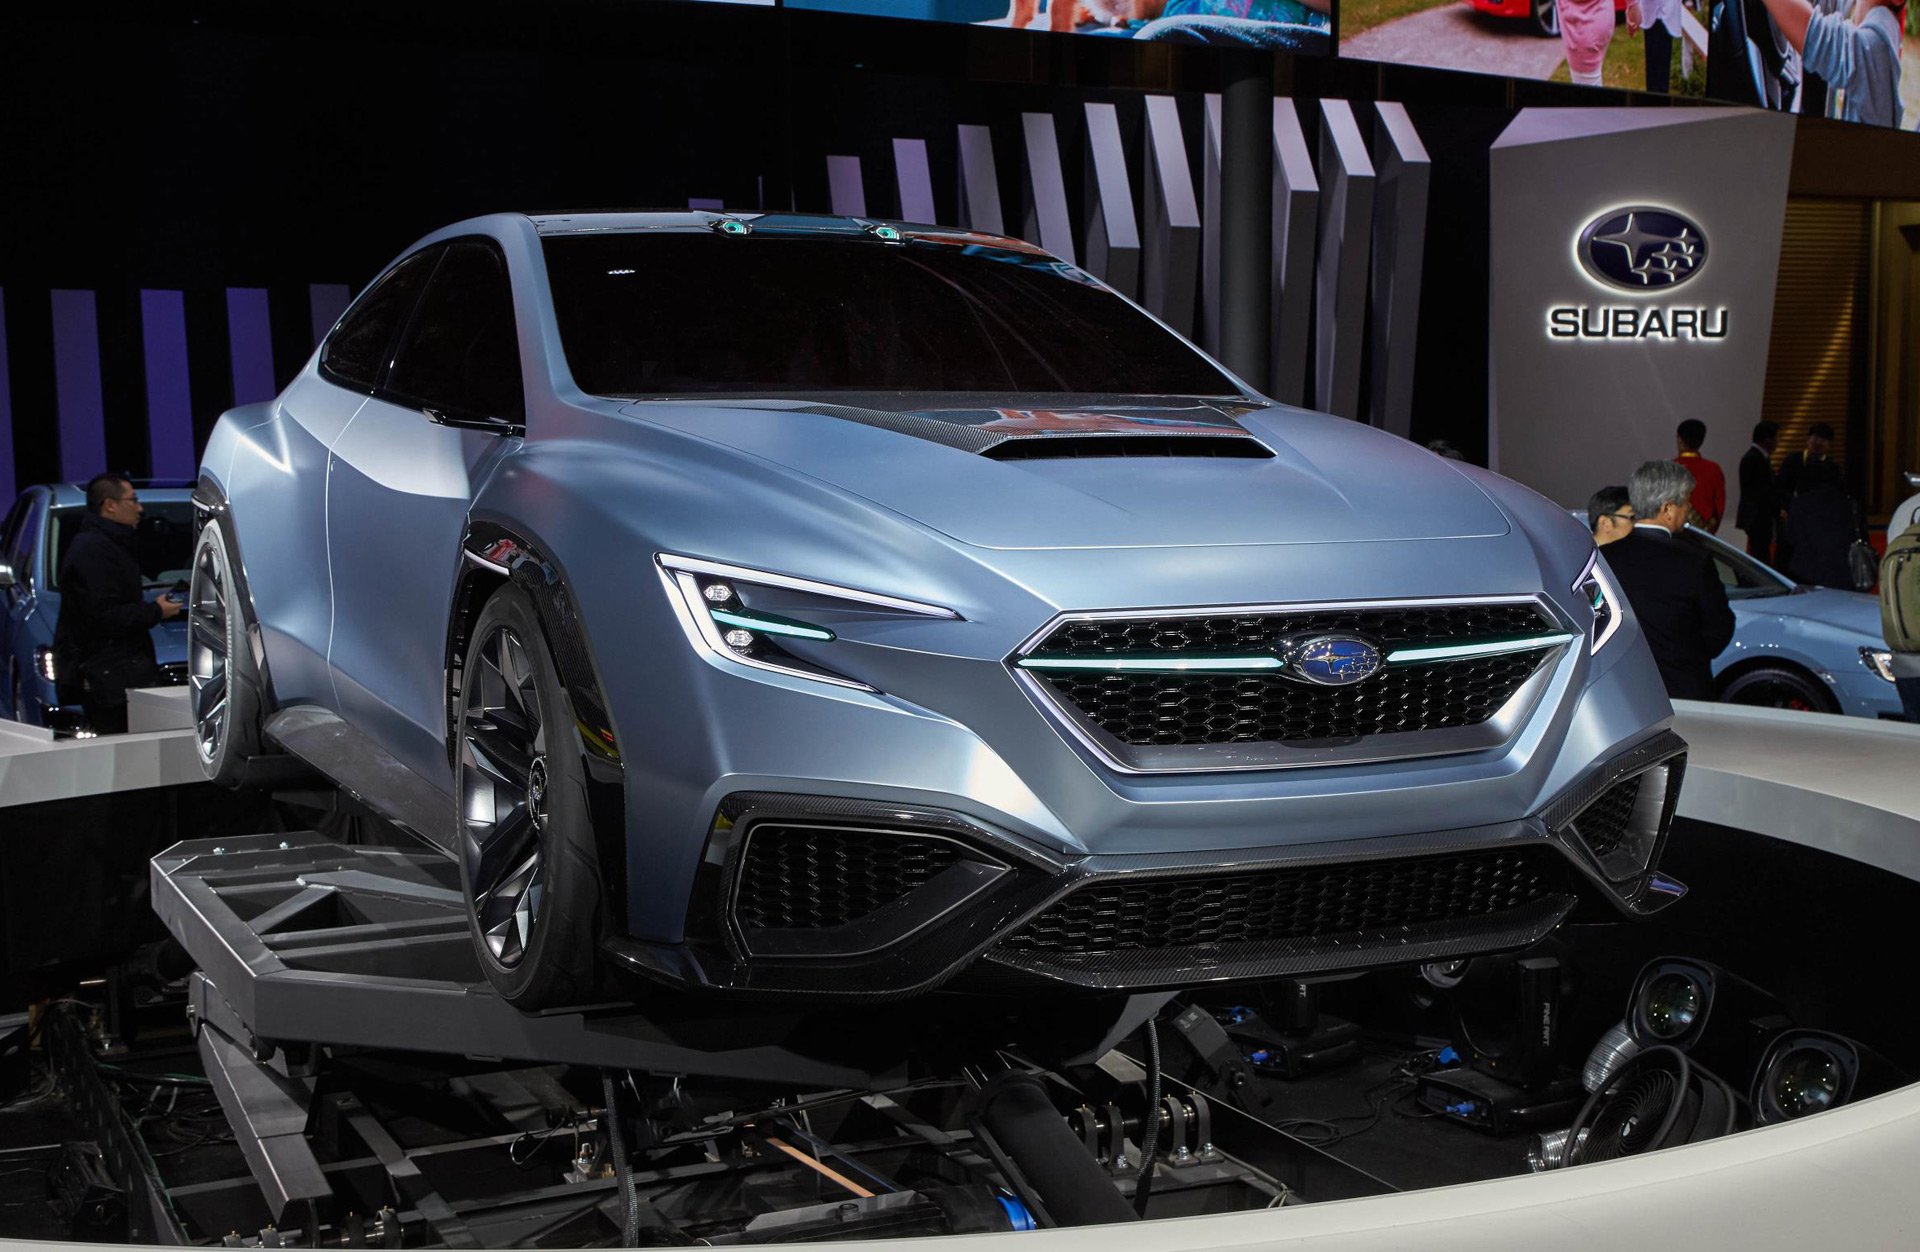 Subaru Hints At Next Gen Wrx With Viziv Performance Concept